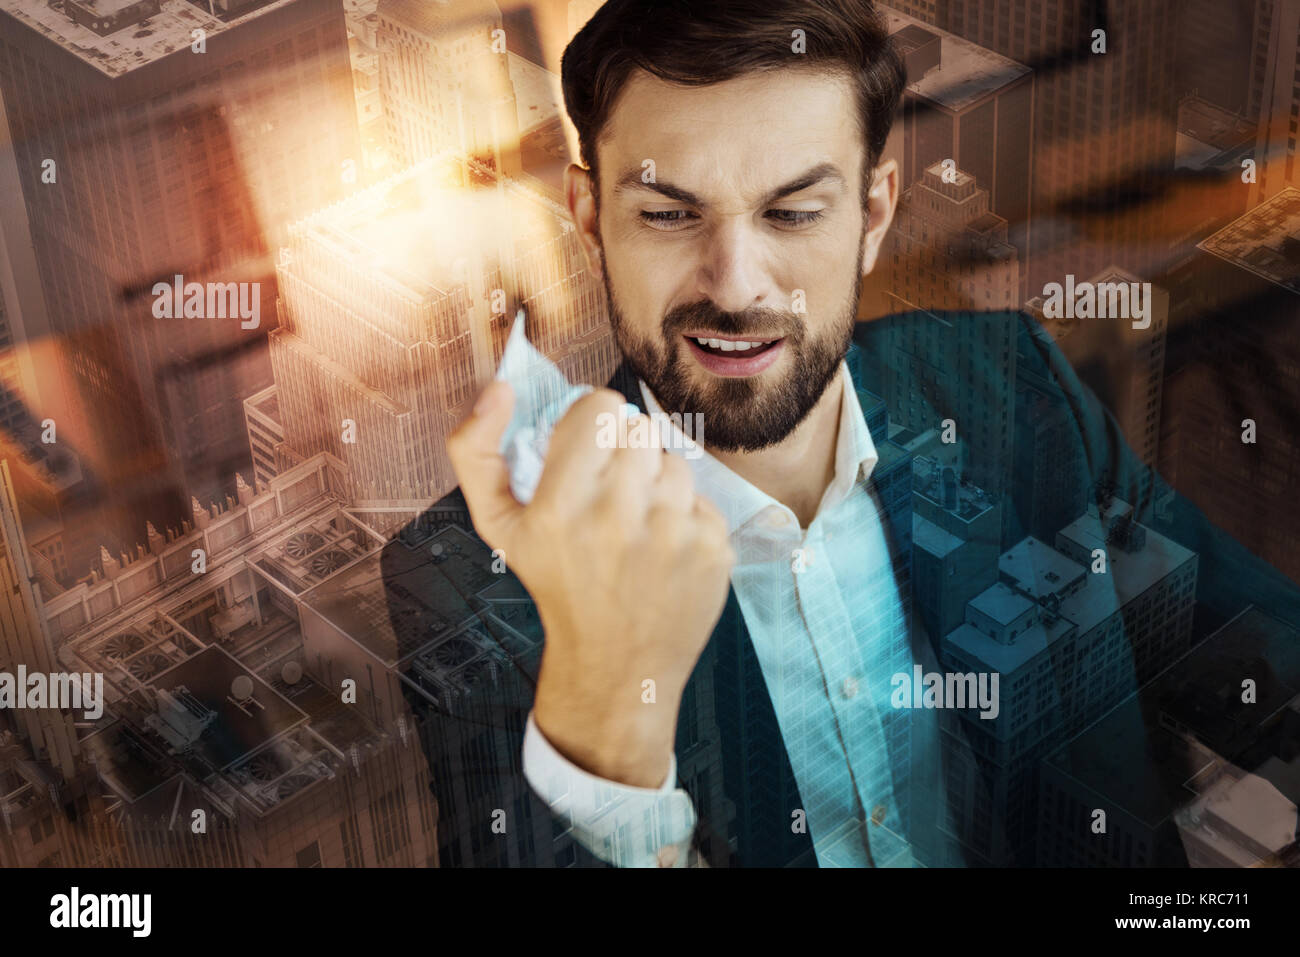 Irritated man in suit squeezing paper in his hands - Stock Image